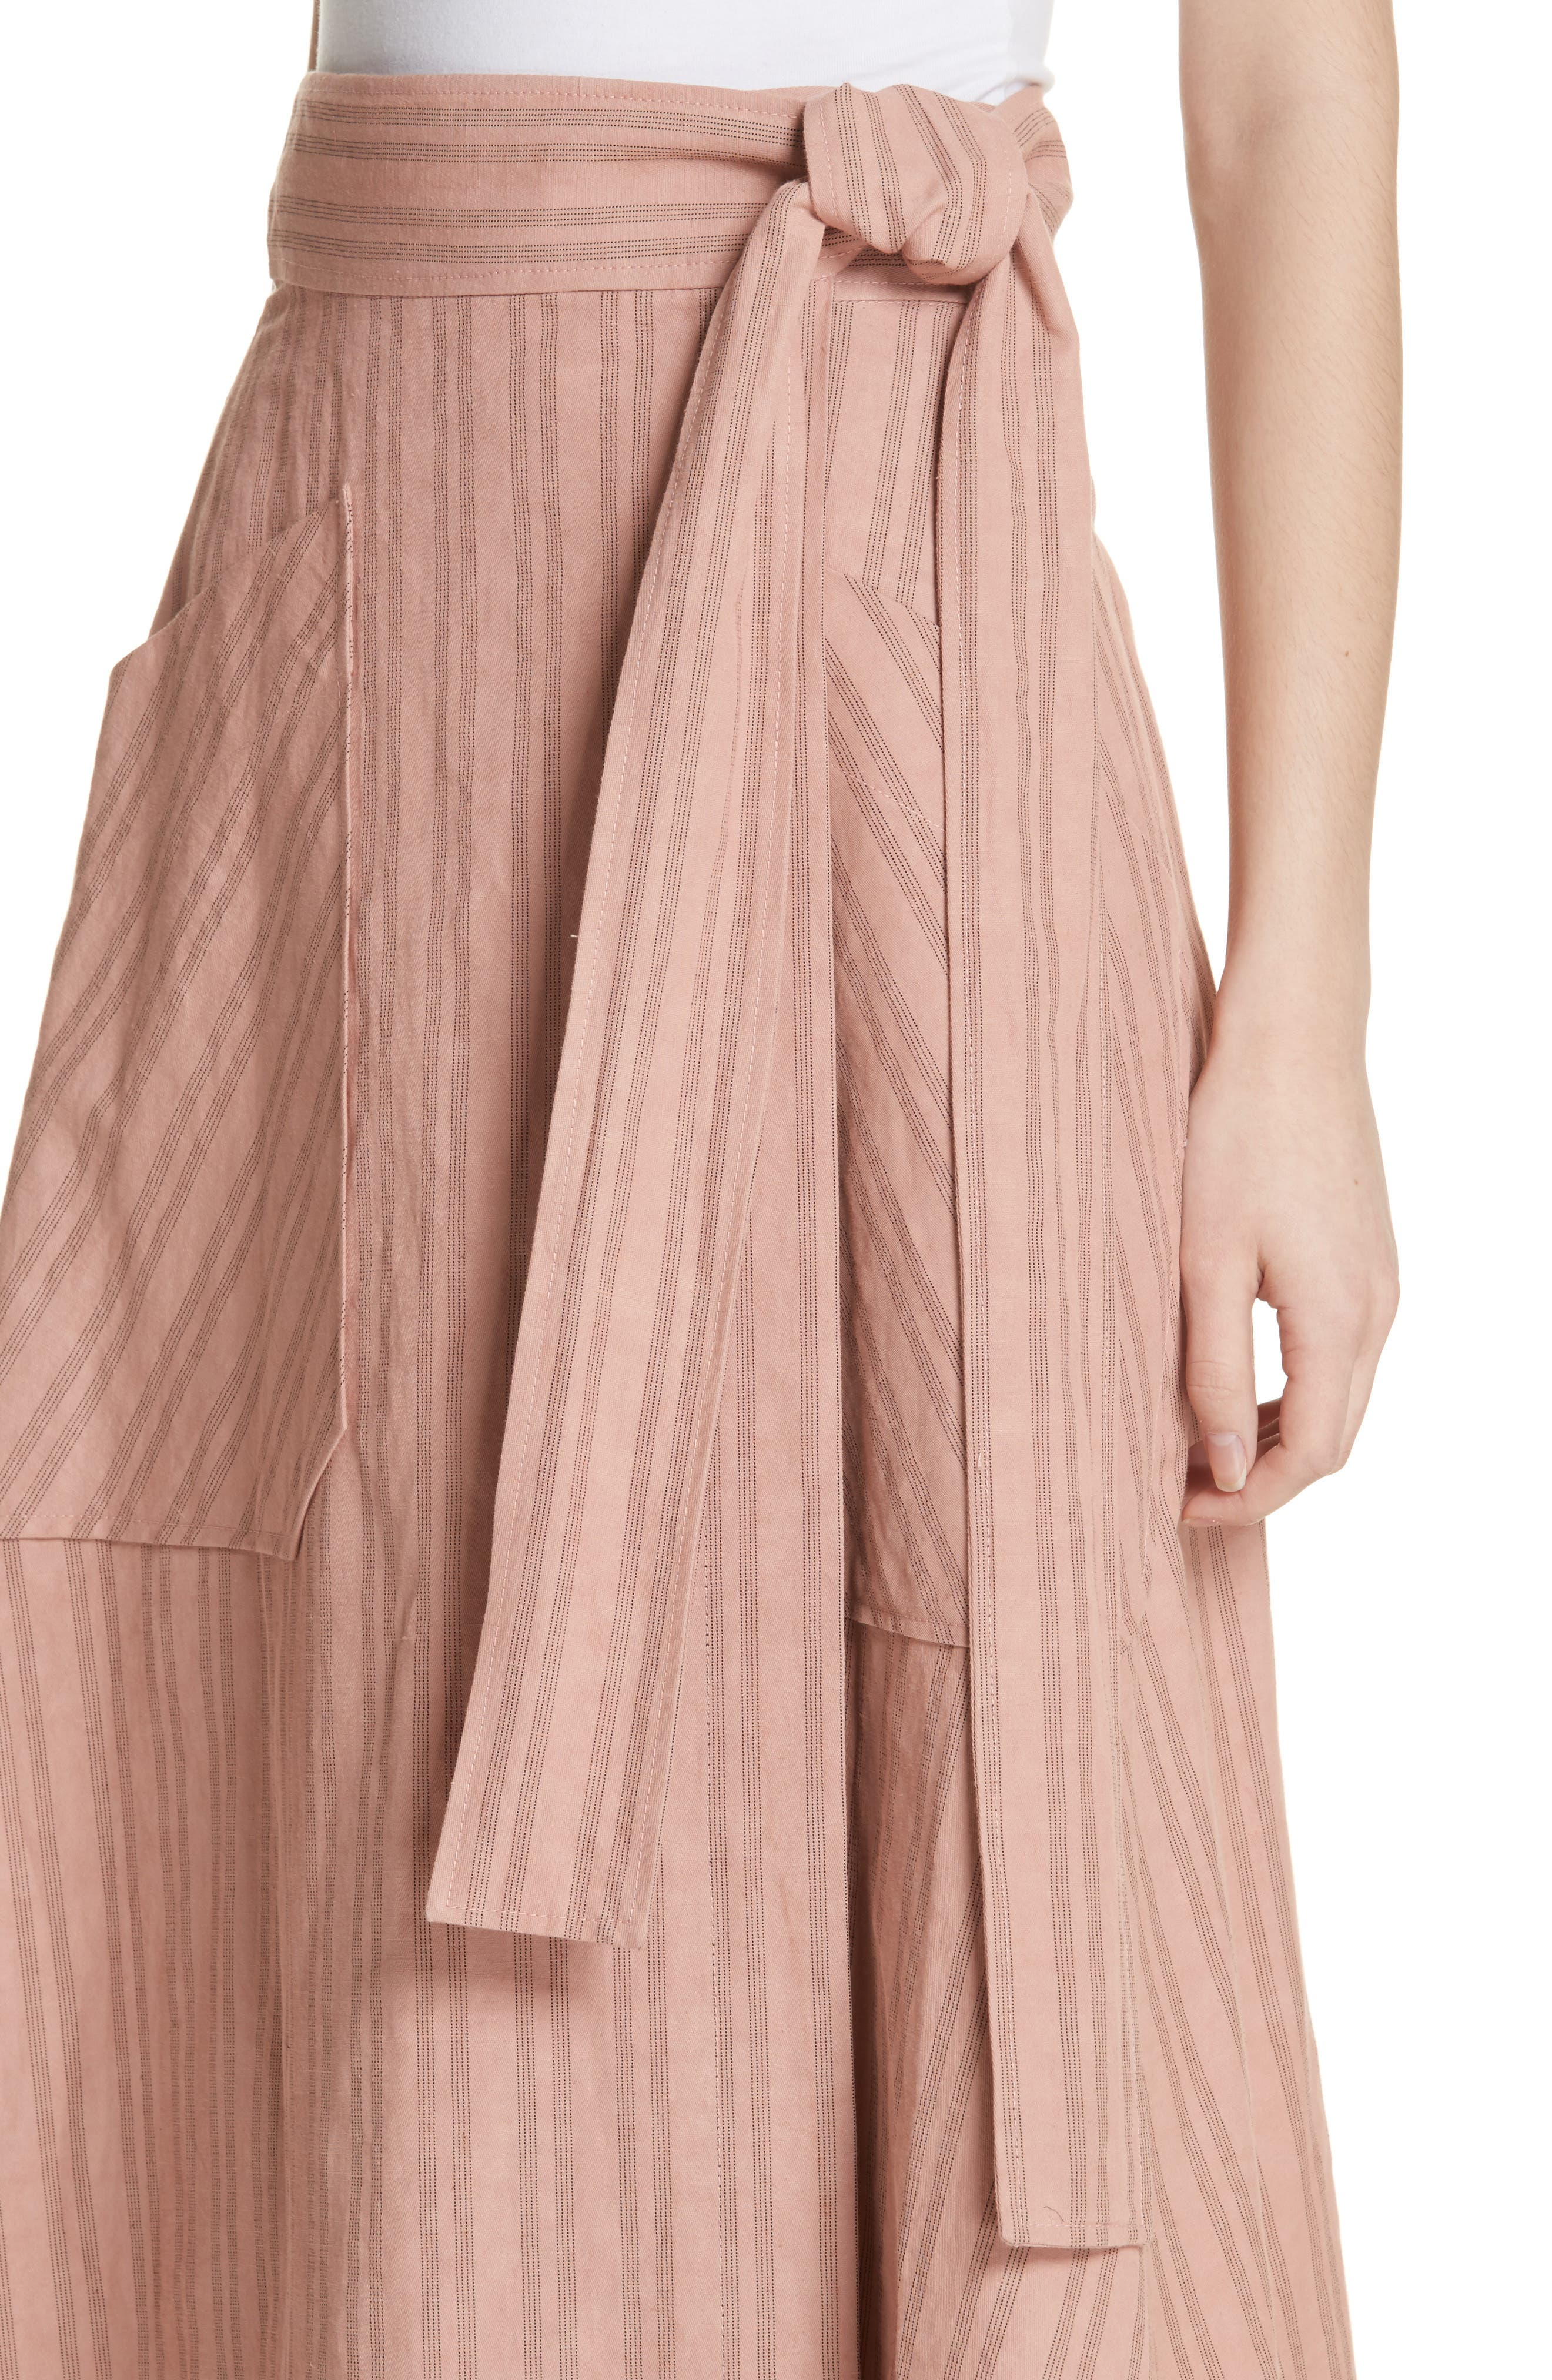 Stripe Wrap Midi Skirt,                             Alternate thumbnail 4, color,                             Rose Hip/ Black